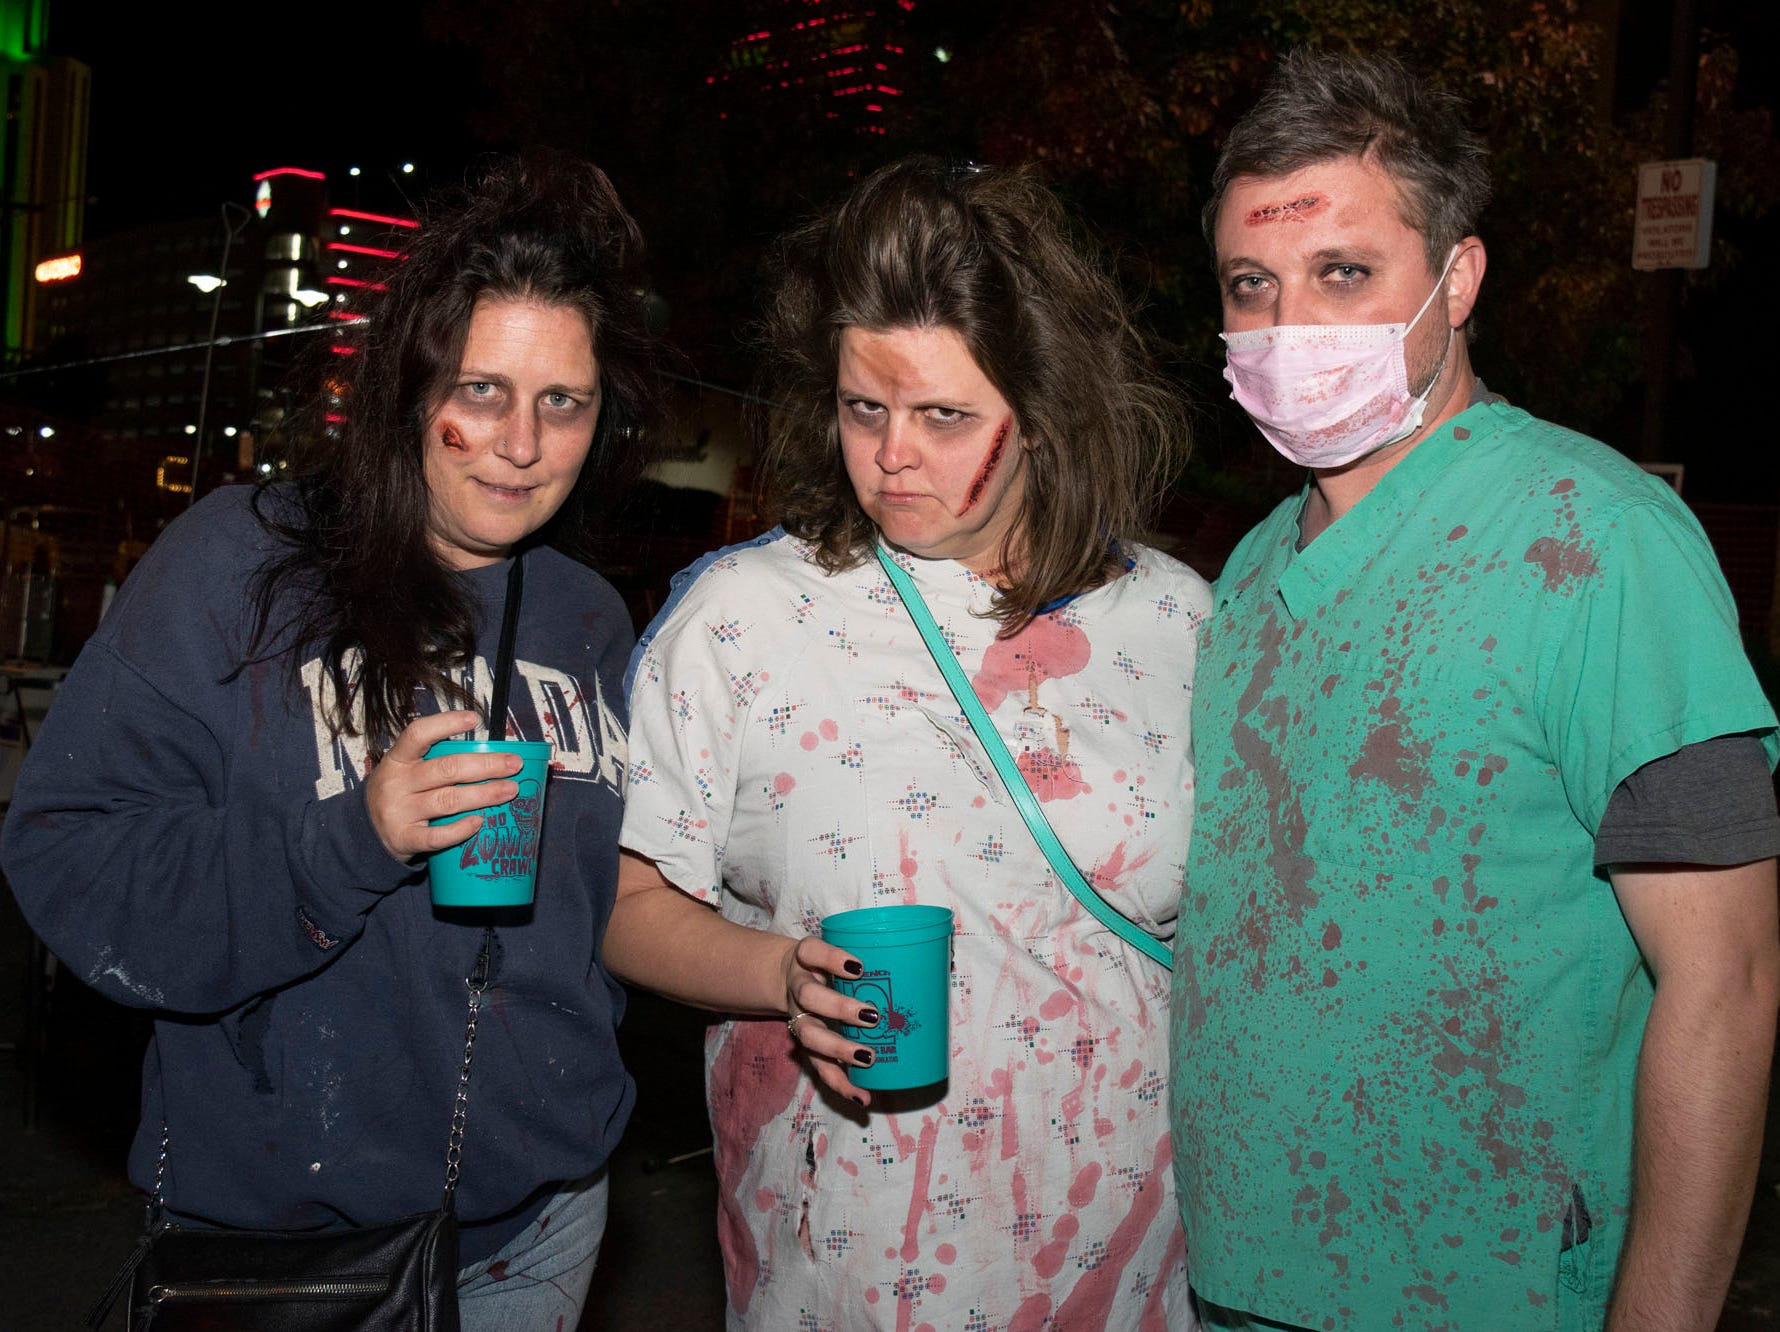 Angie Brown, Krysty Cahoon, and Ben Burke attend the Zombie Crawl on Saturday, Oct. 20, 2018. Reno, Nev.